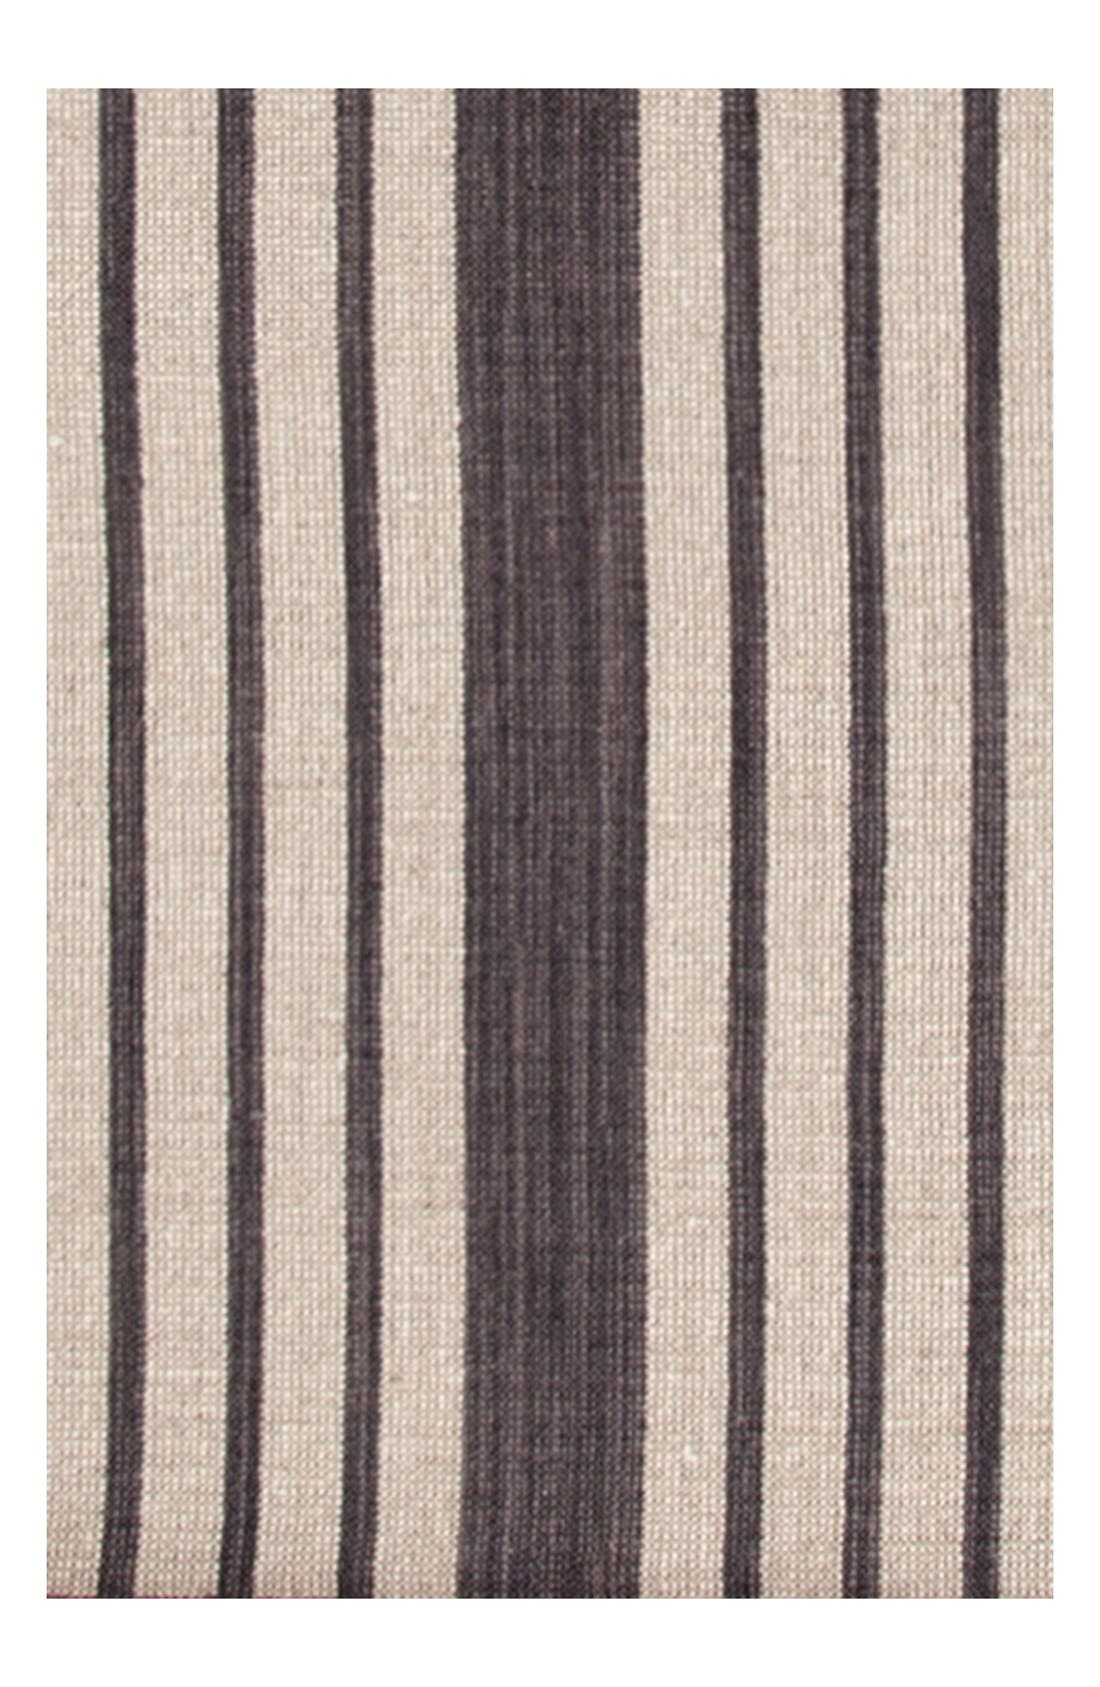 'Lenox' Stripe Rug,                             Main thumbnail 1, color,                             CHARCOAL